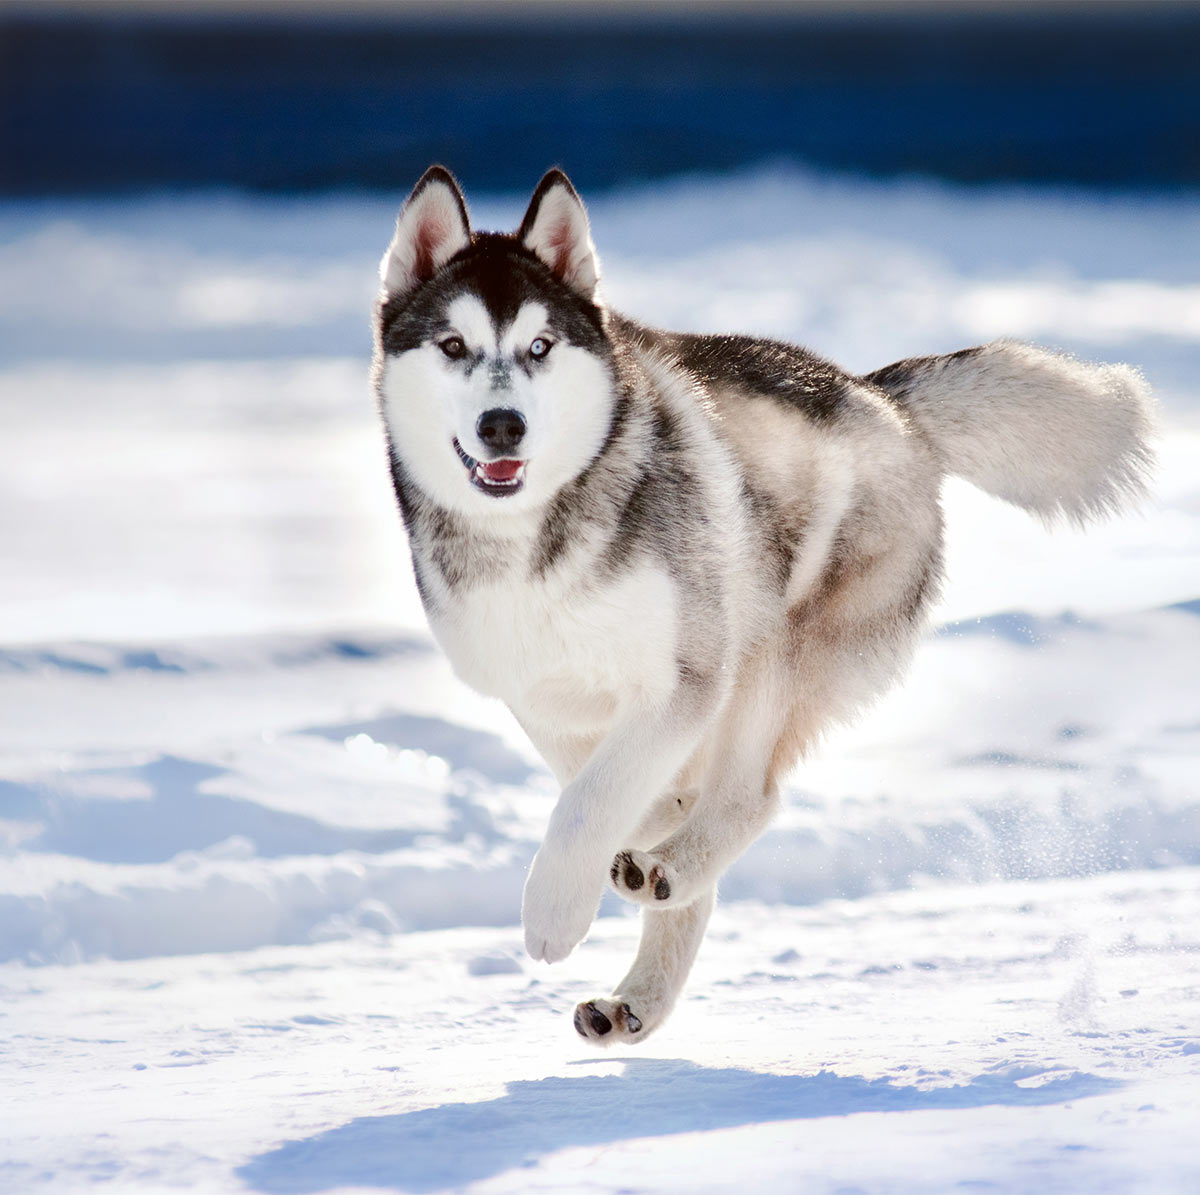 Pictures of Husky dogs